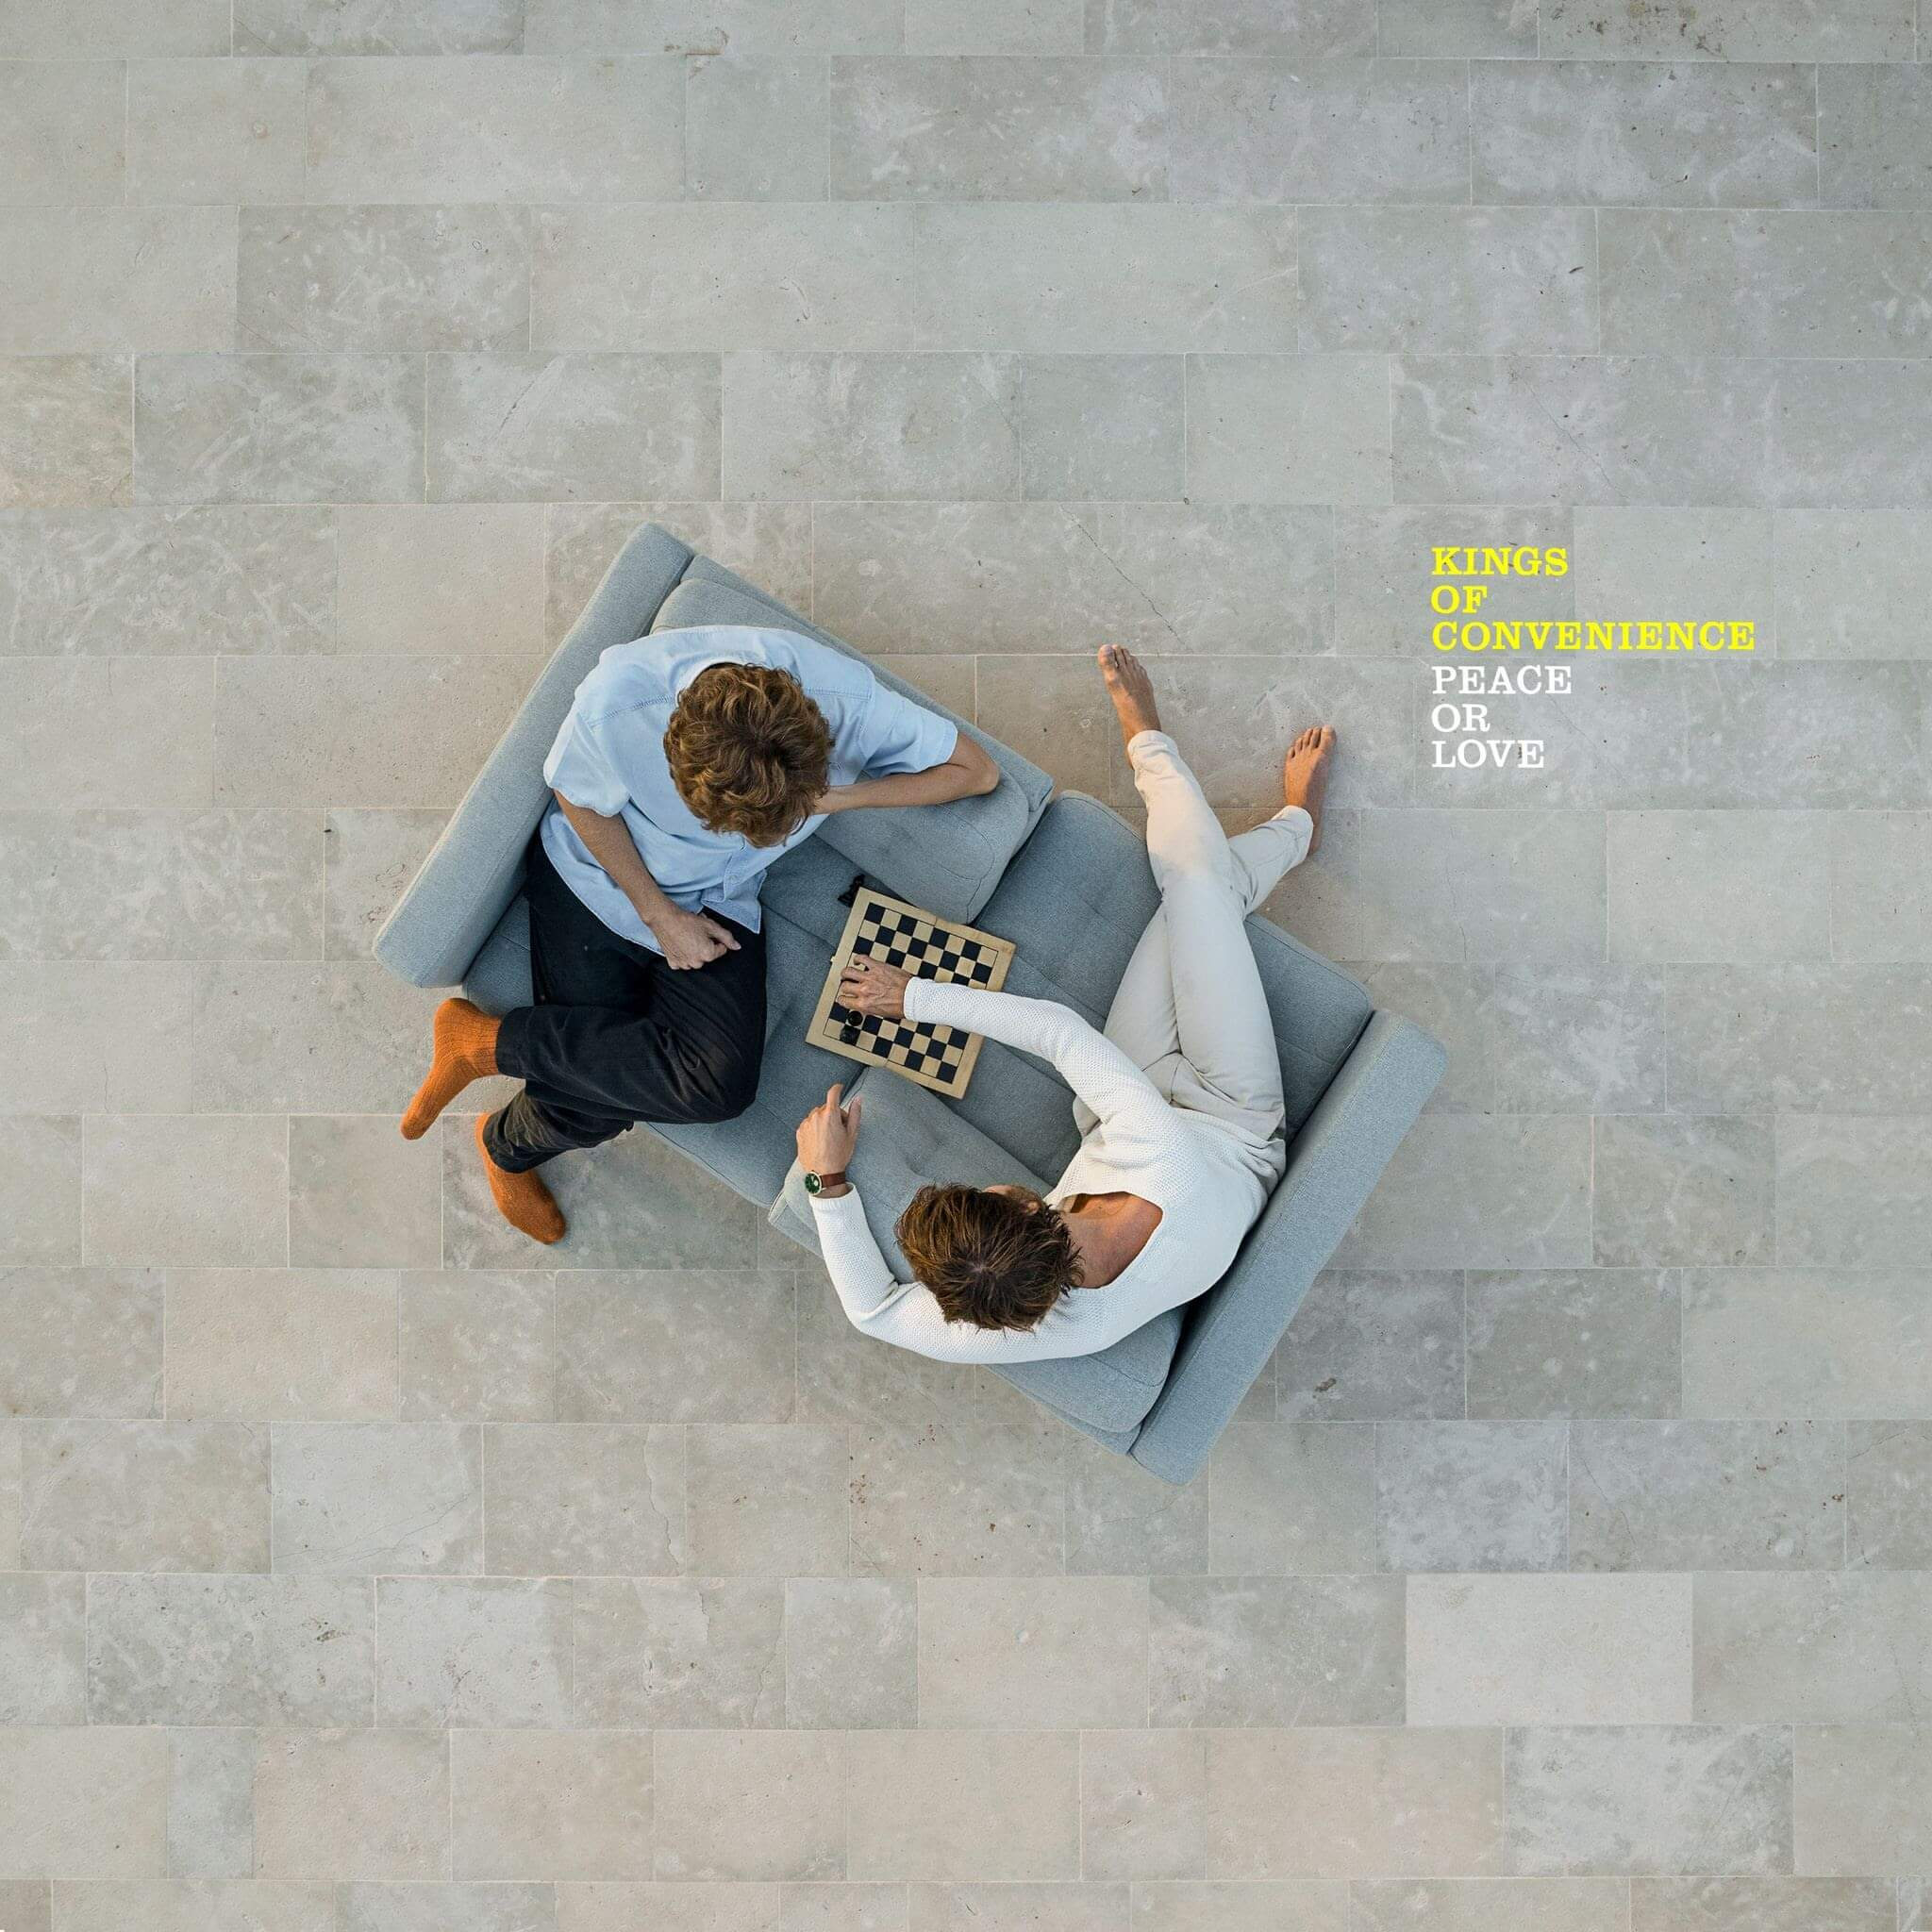 Kings Of Convenience Peace Or Love Album review by Adam Fink. The Swedish band's full-length is out today via IMPERIAL